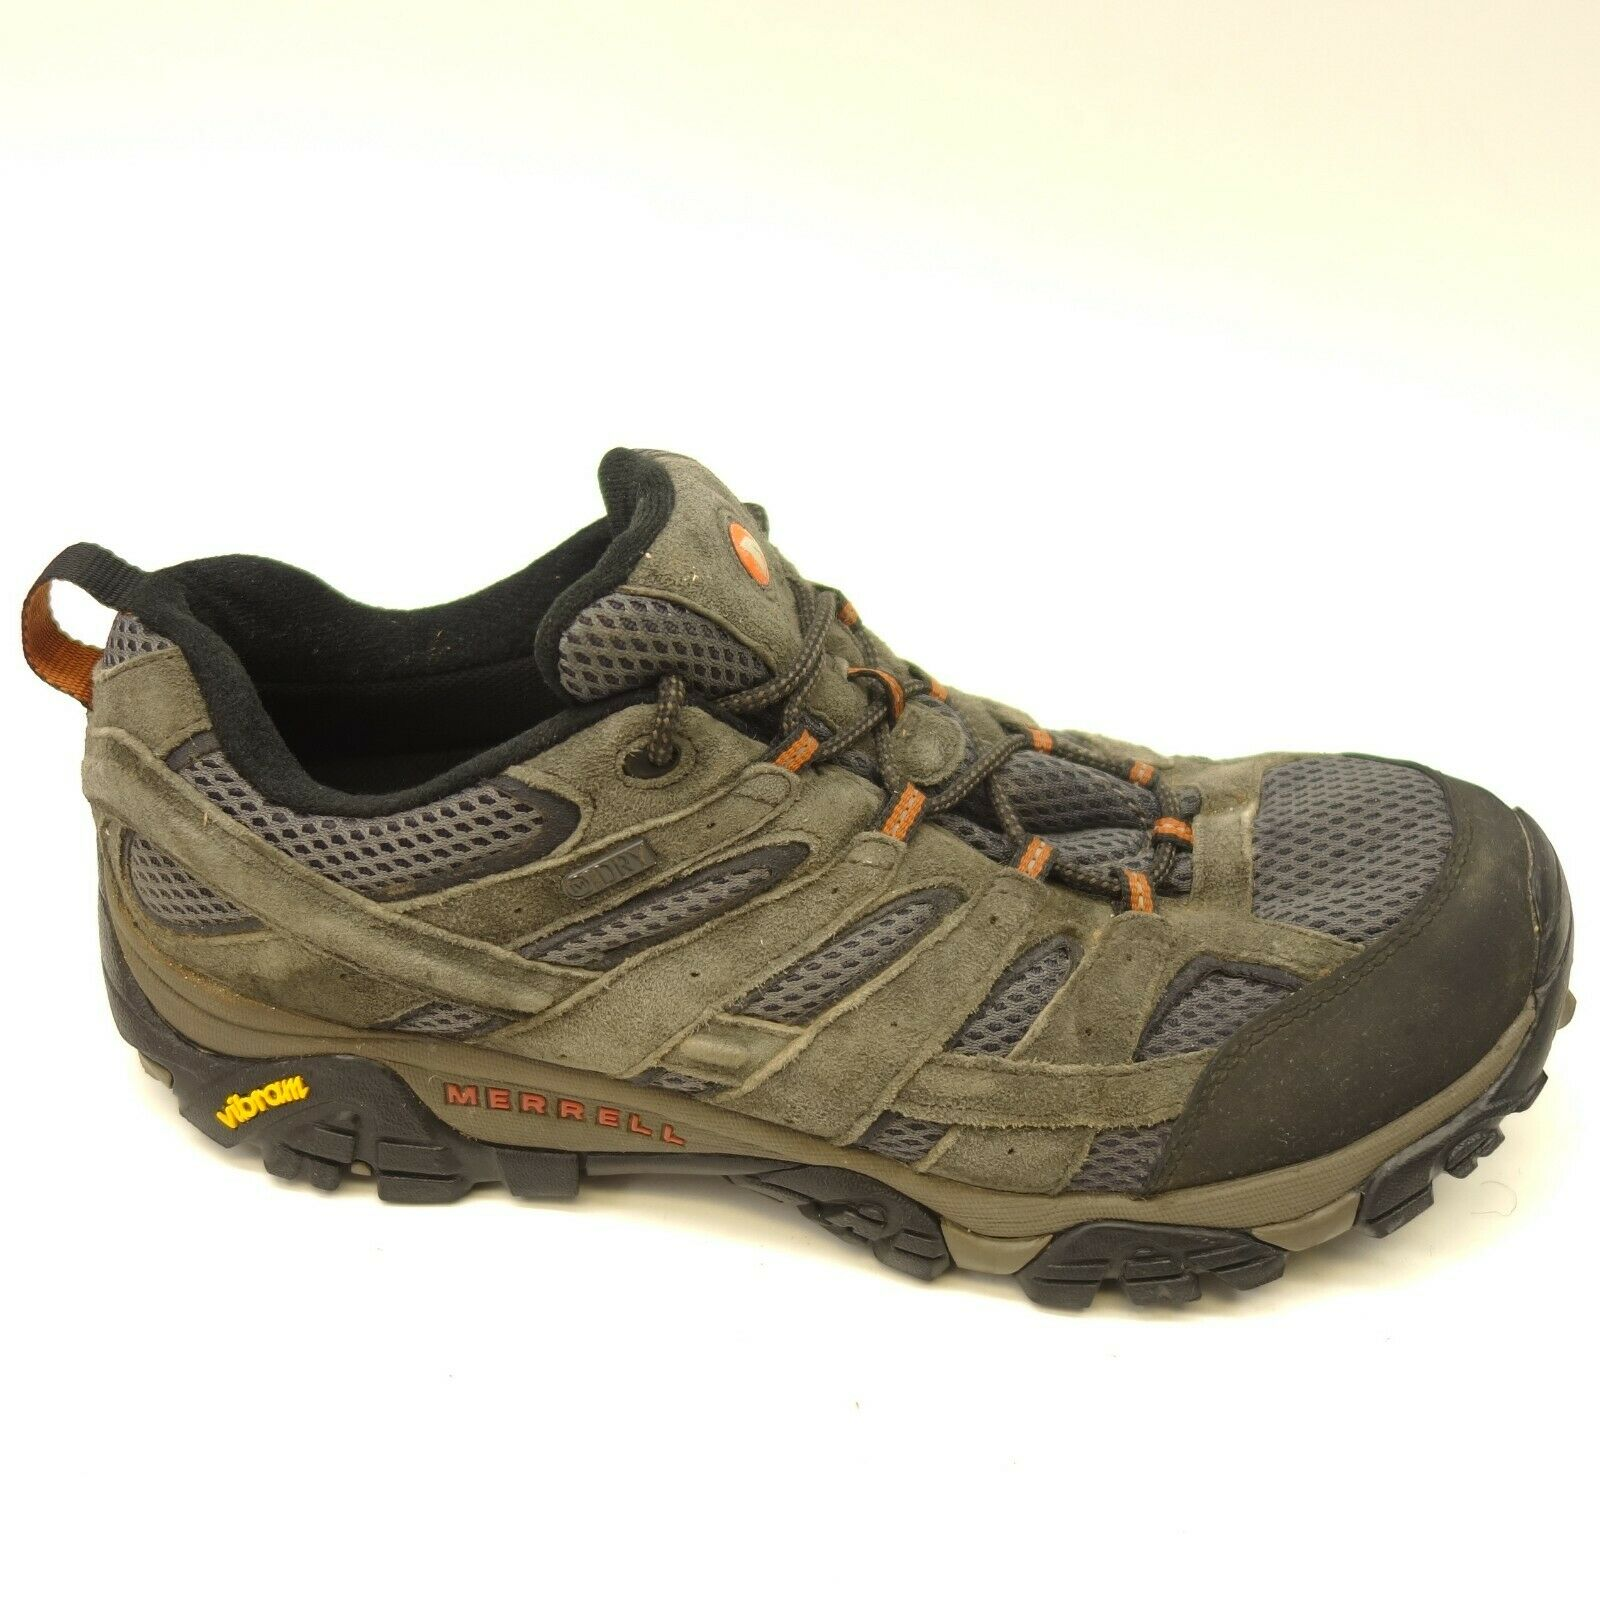 e0b4fbb19045c Merrell Moab 2 Sz 11.5 Low Waterproof Athletic Support Hiking Trail Mens  shoes